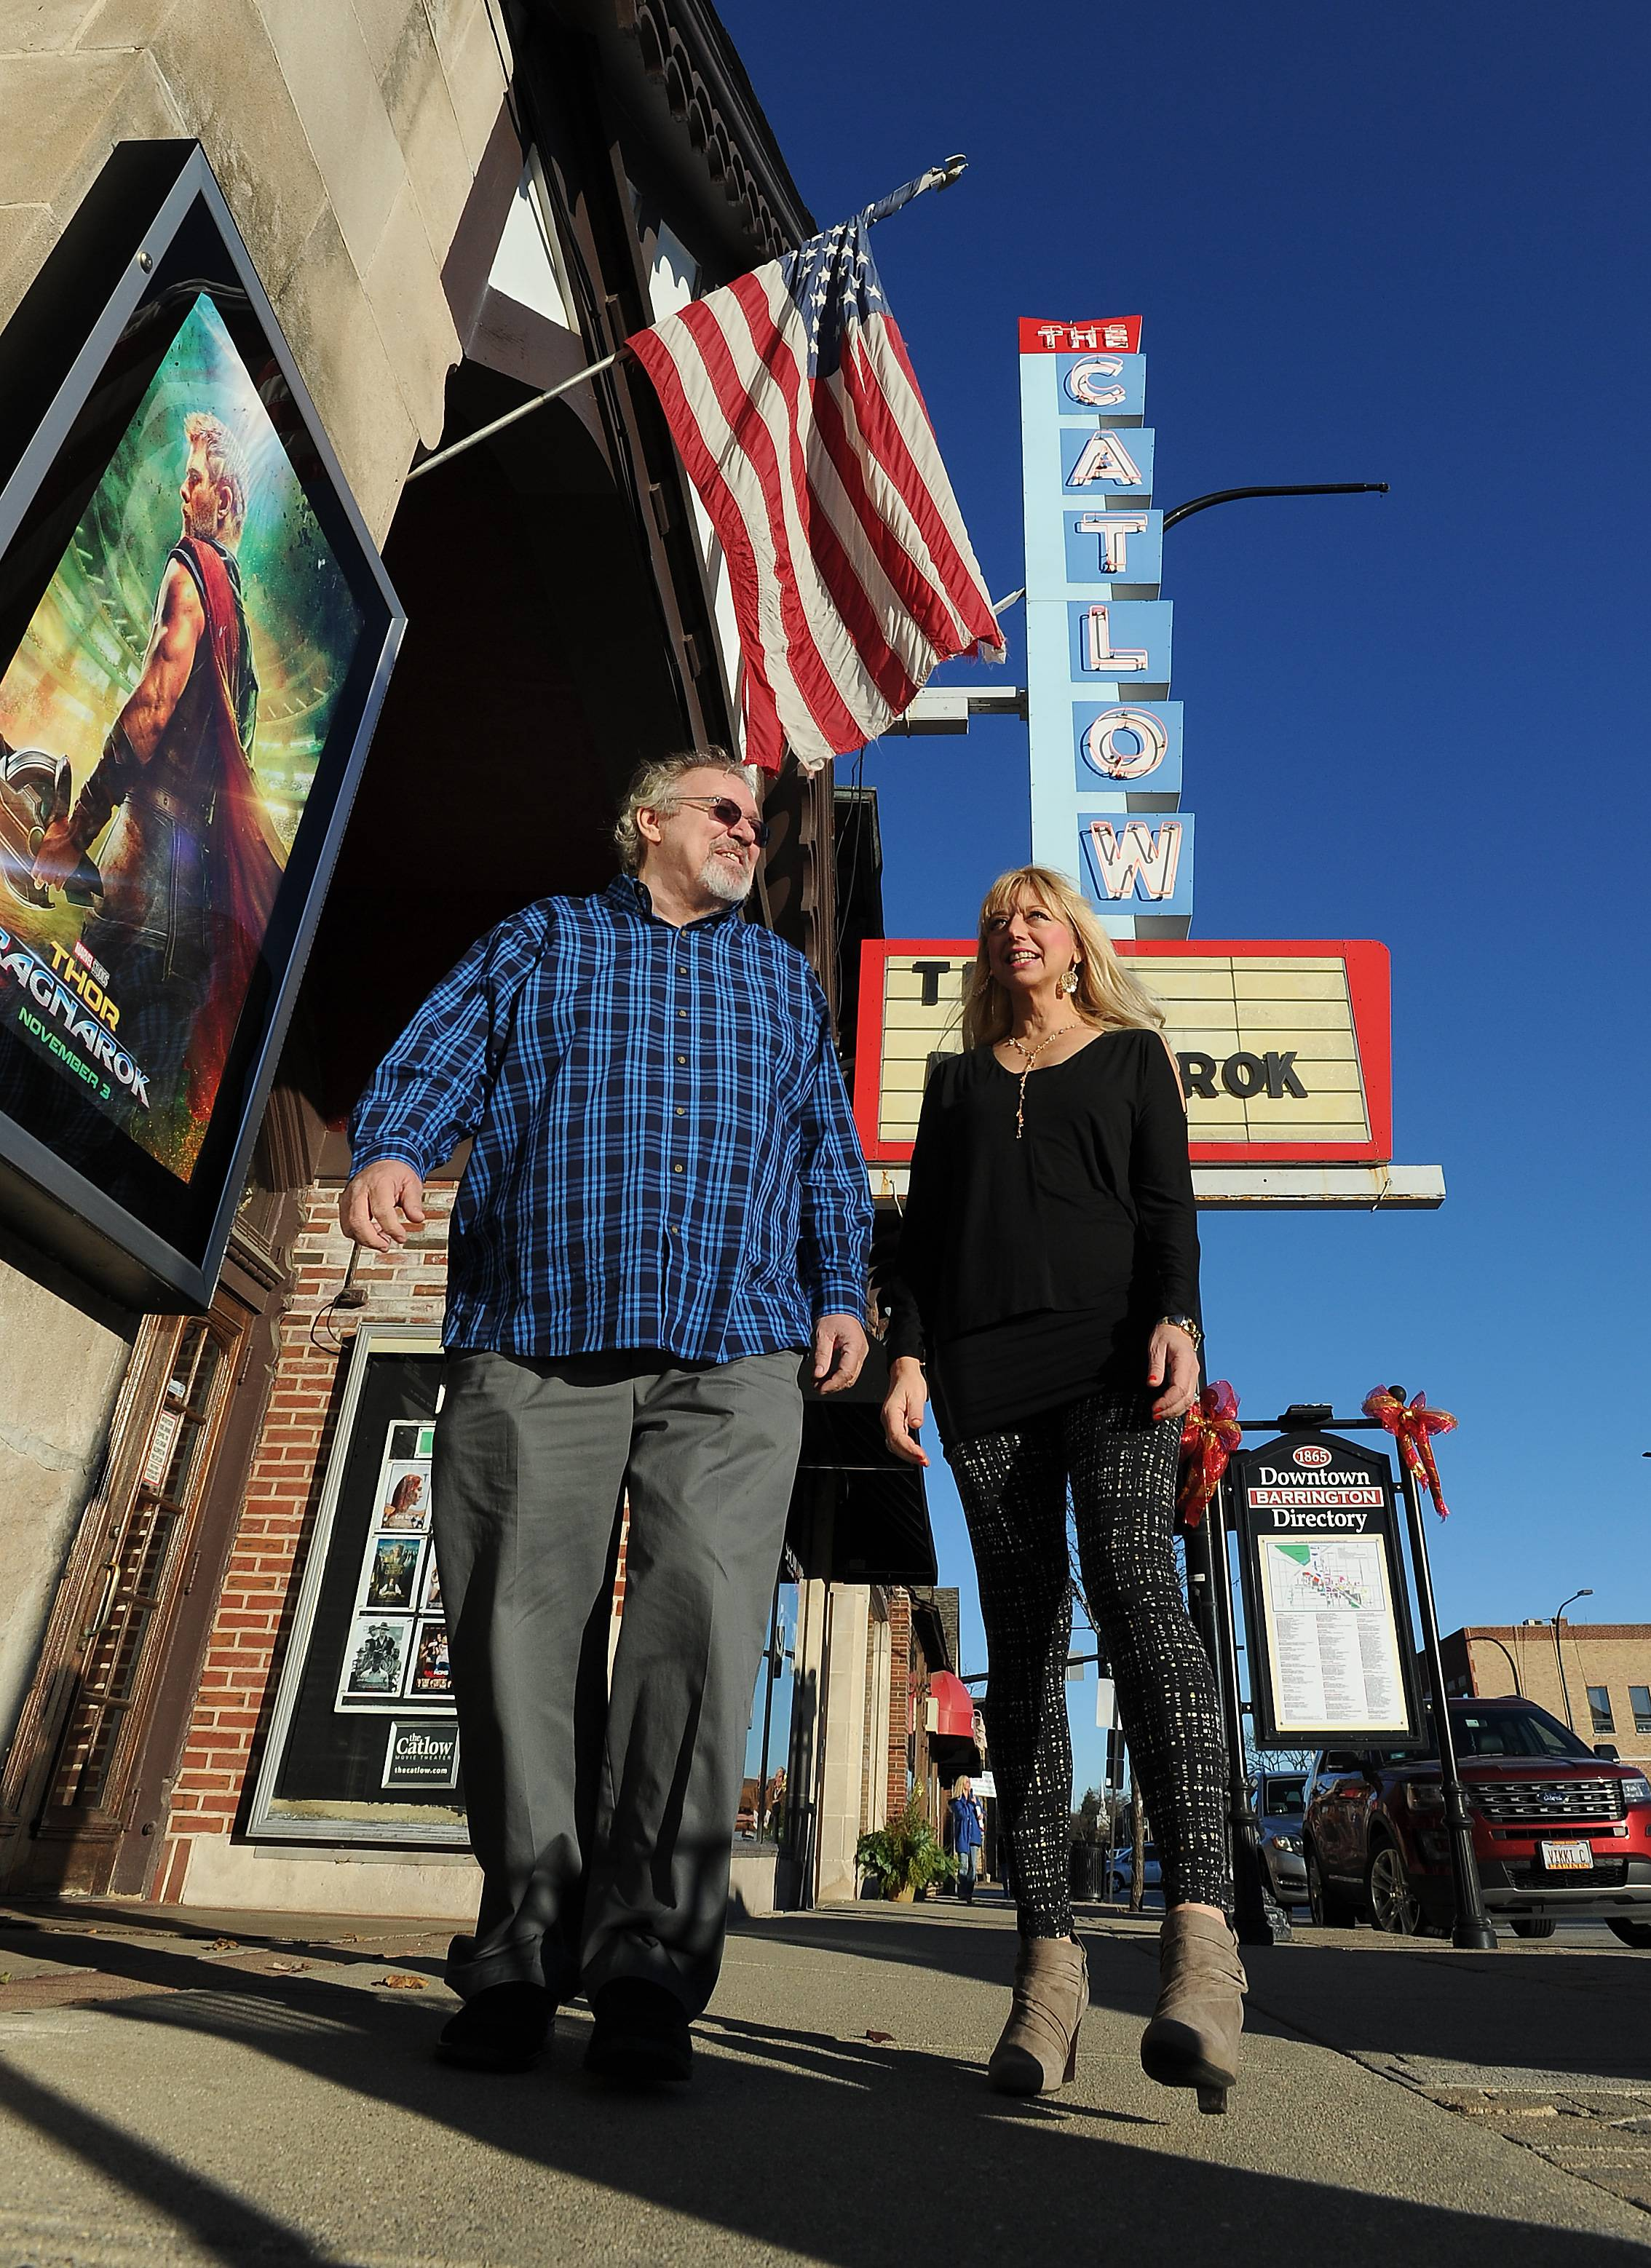 Tim O'Connor, owner of the Catlow Theater and the adjacent Showtime Eatery in downtown Barrington, and wife Laura are trying to raise $40,000 in online contributions to help pay for restaurant improvements.